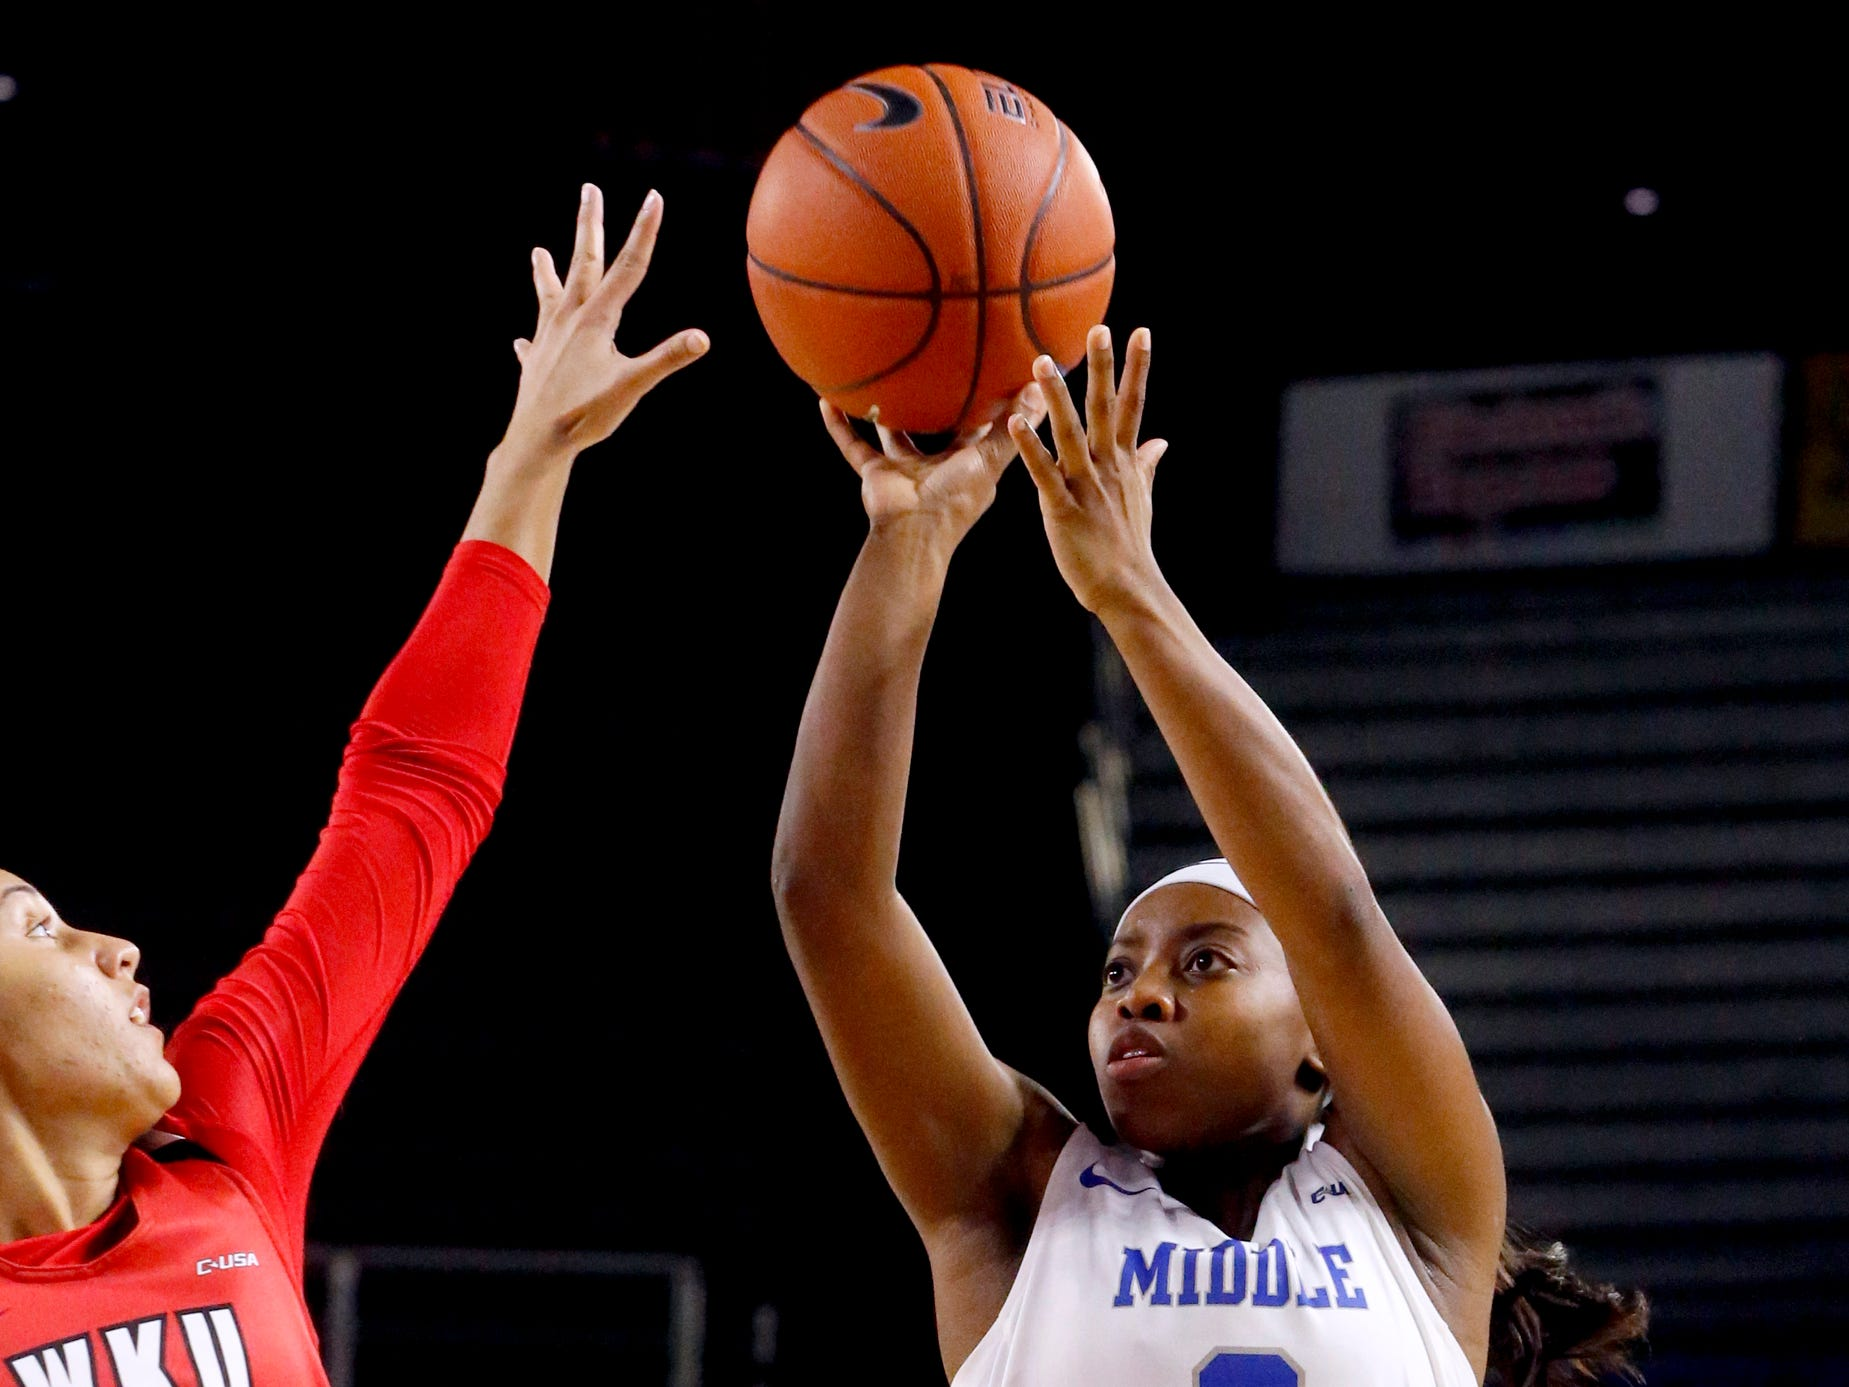 MTSU's guard Taylor Sutton (2) shoots the ball as Western's guard Alexis Brewer (11) guards her on Thursday, Feb. 14, 2019.